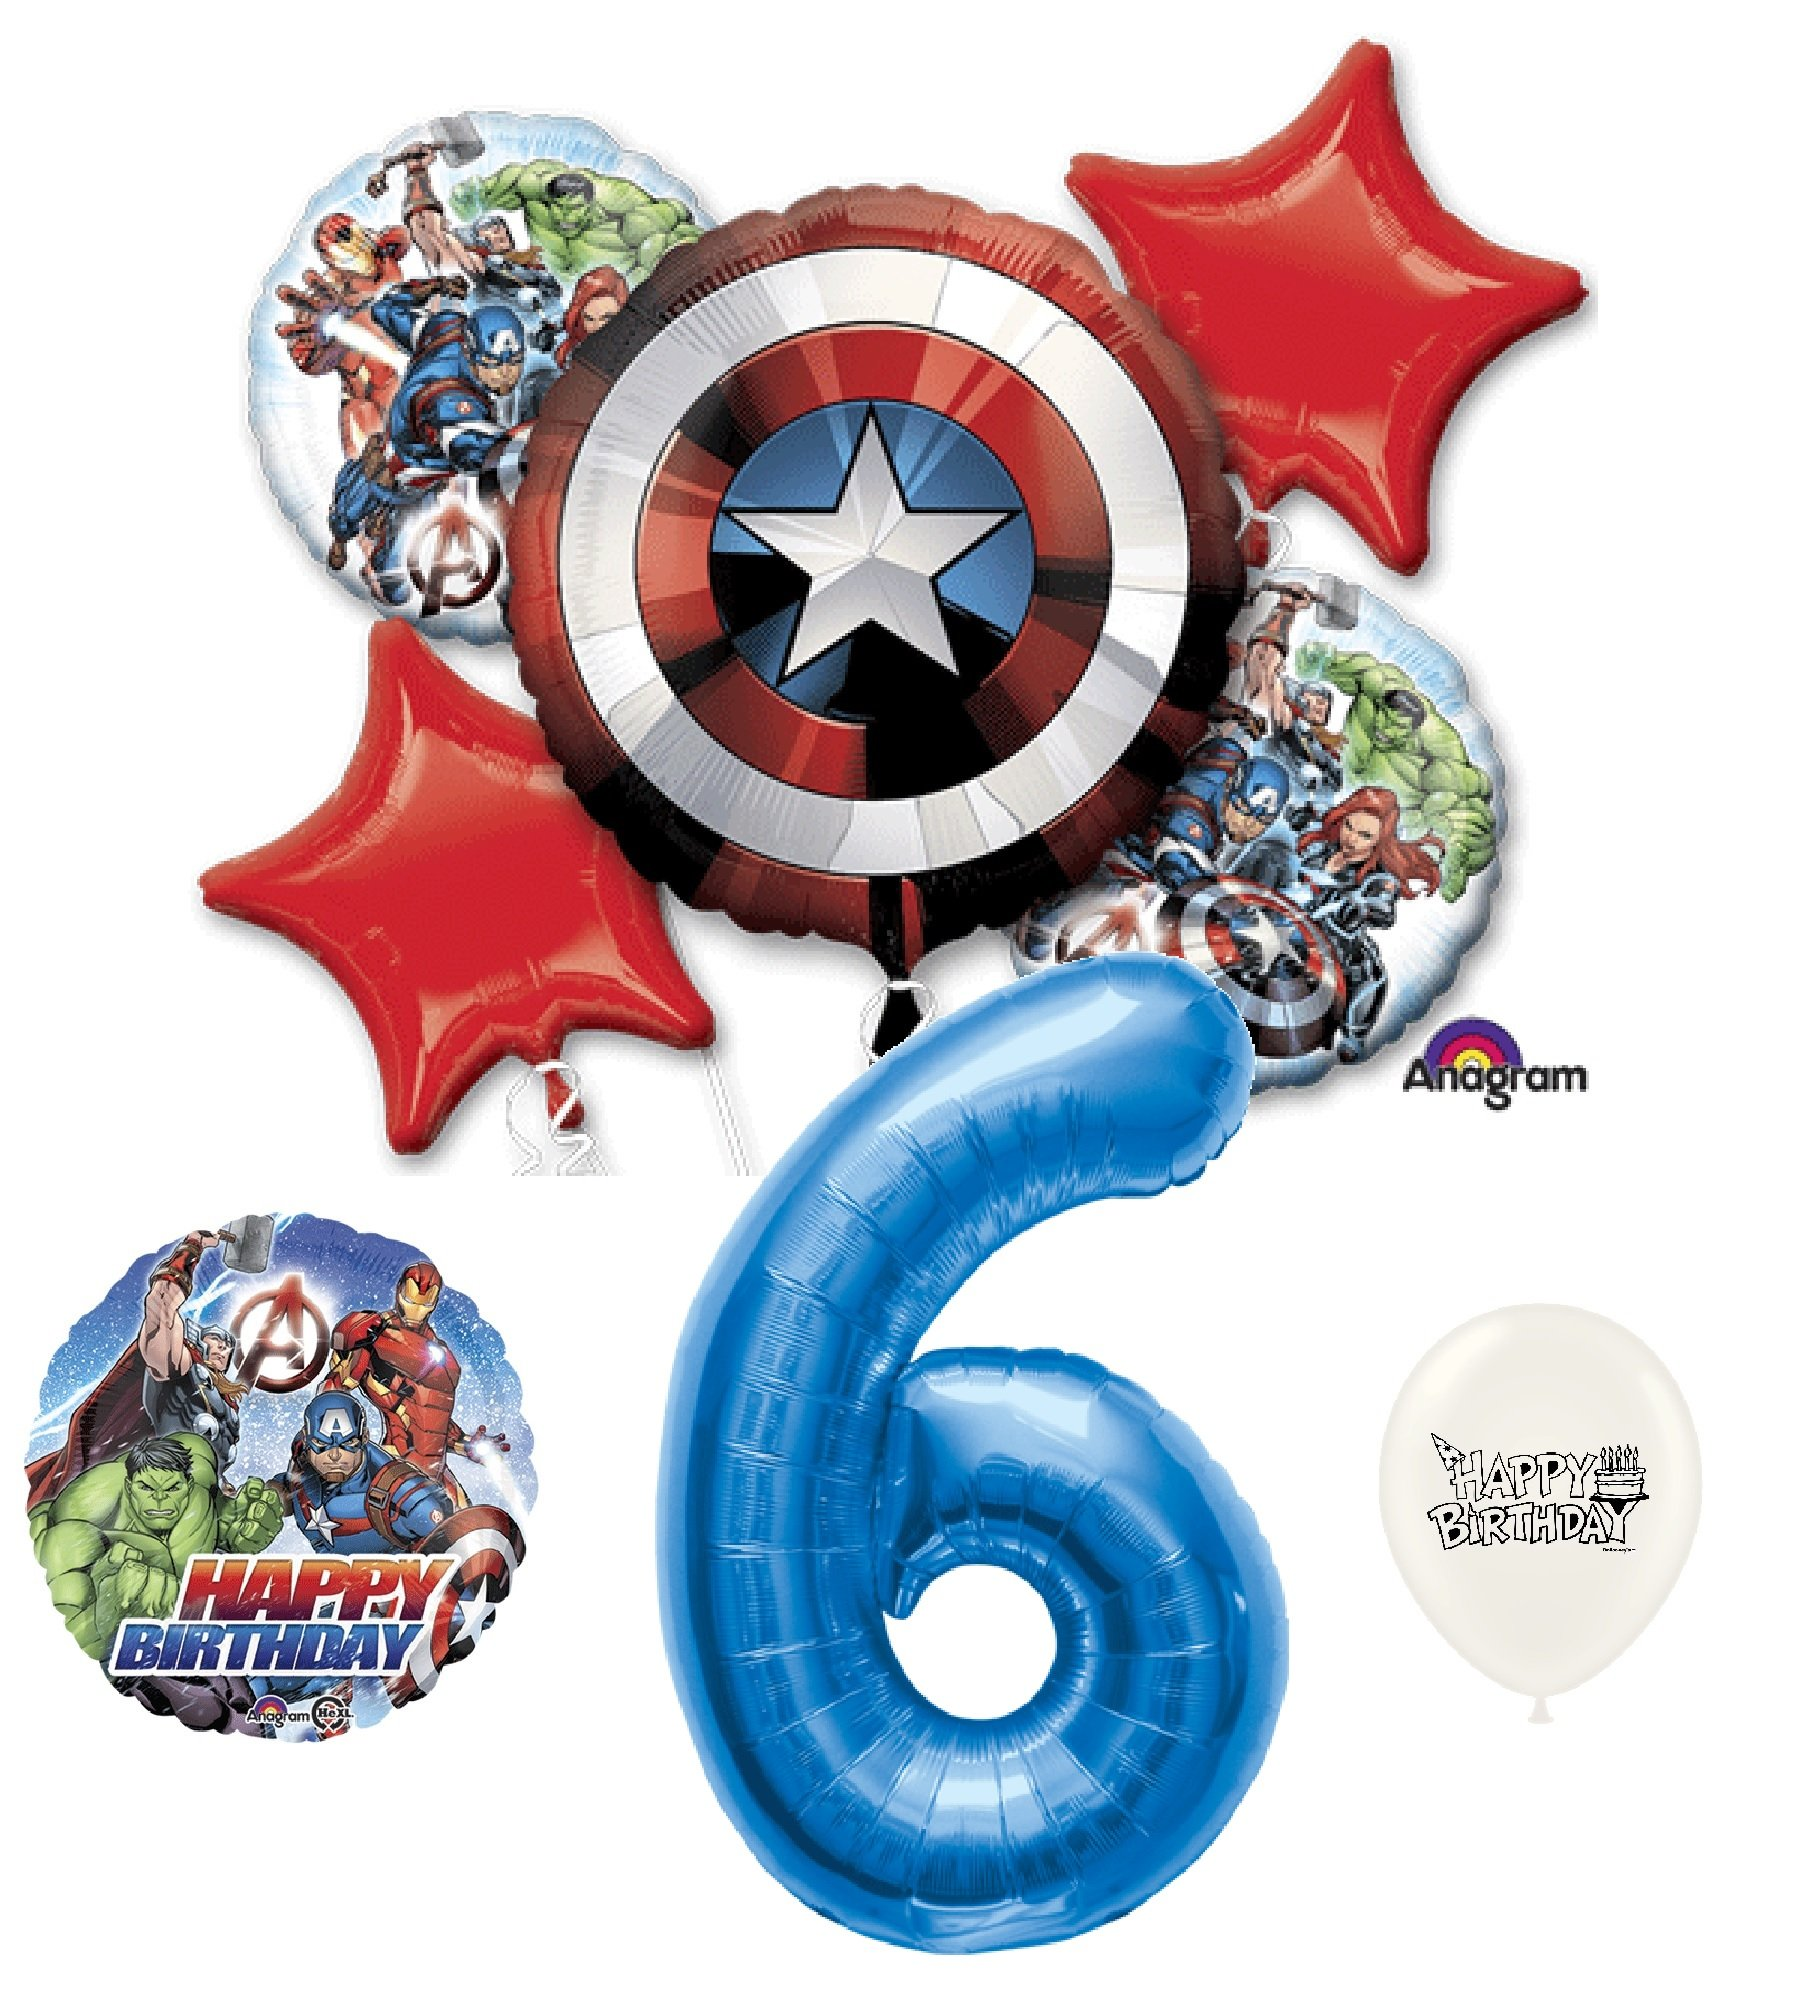 6th Birthday Blue Number Avengers Captain America Shield Balloons Bouquet Bundle